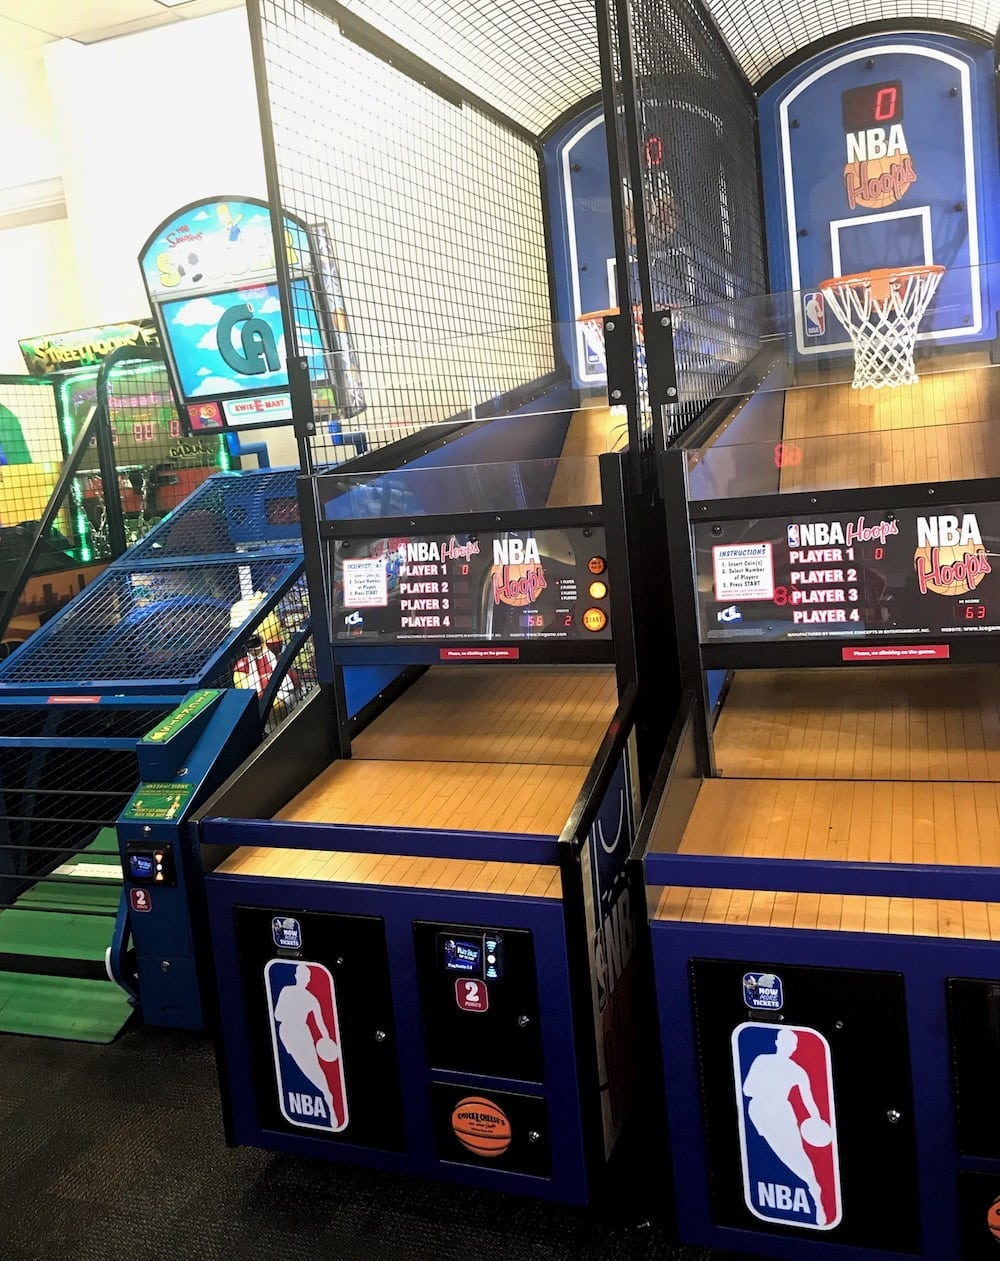 Chuck E Cheese's basketball game